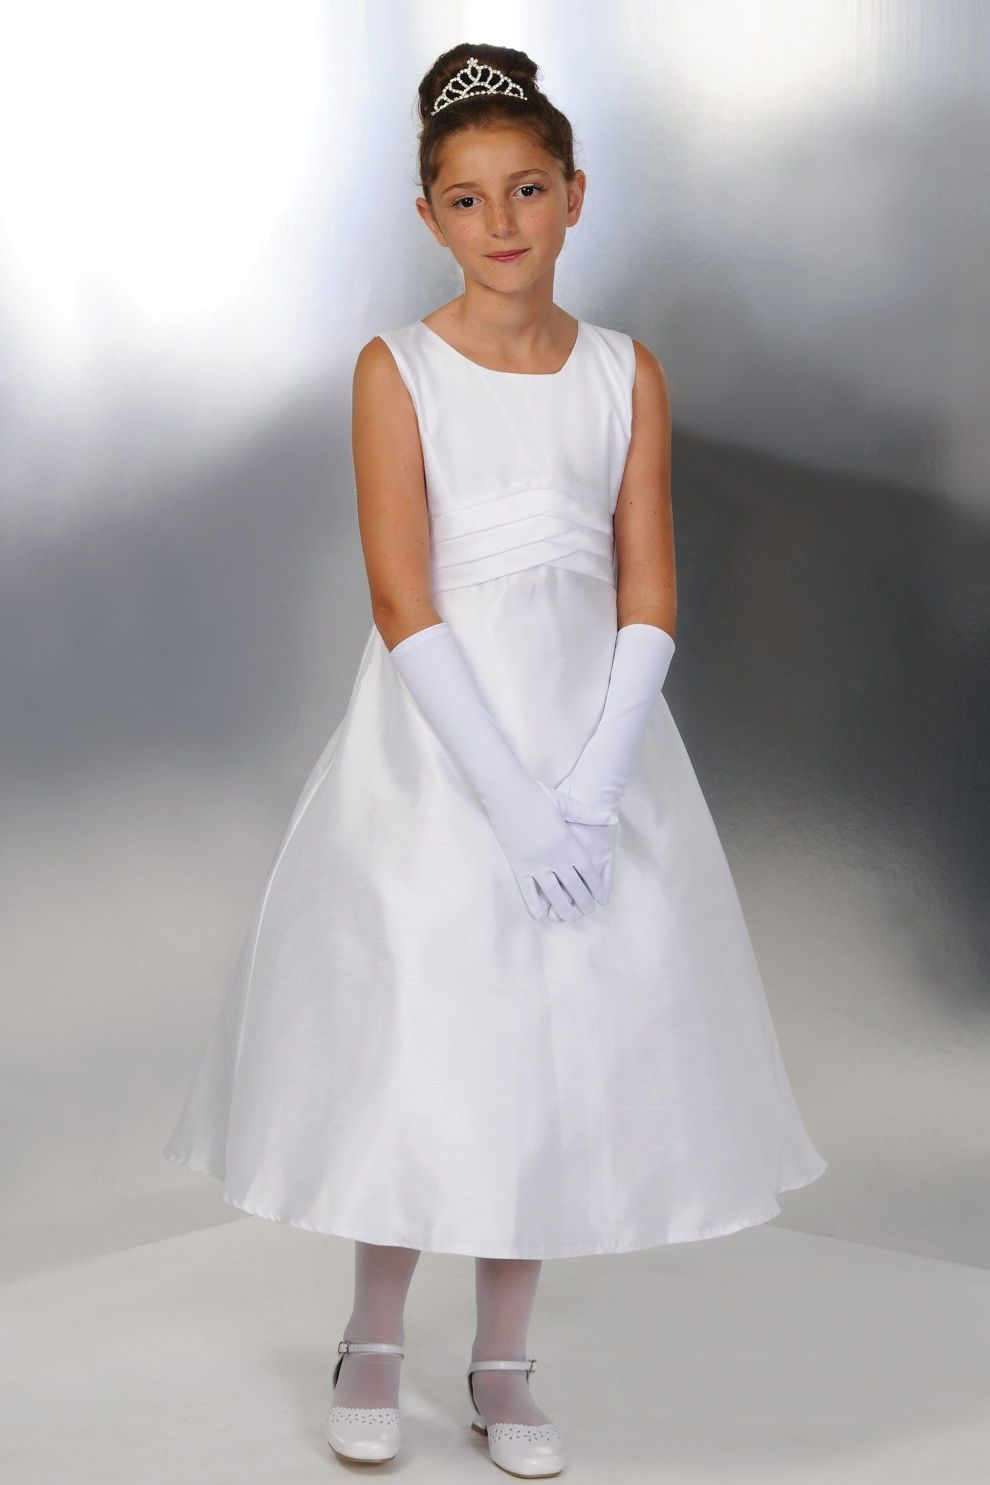 10  images about first communion on Pinterest - Floral crown ...